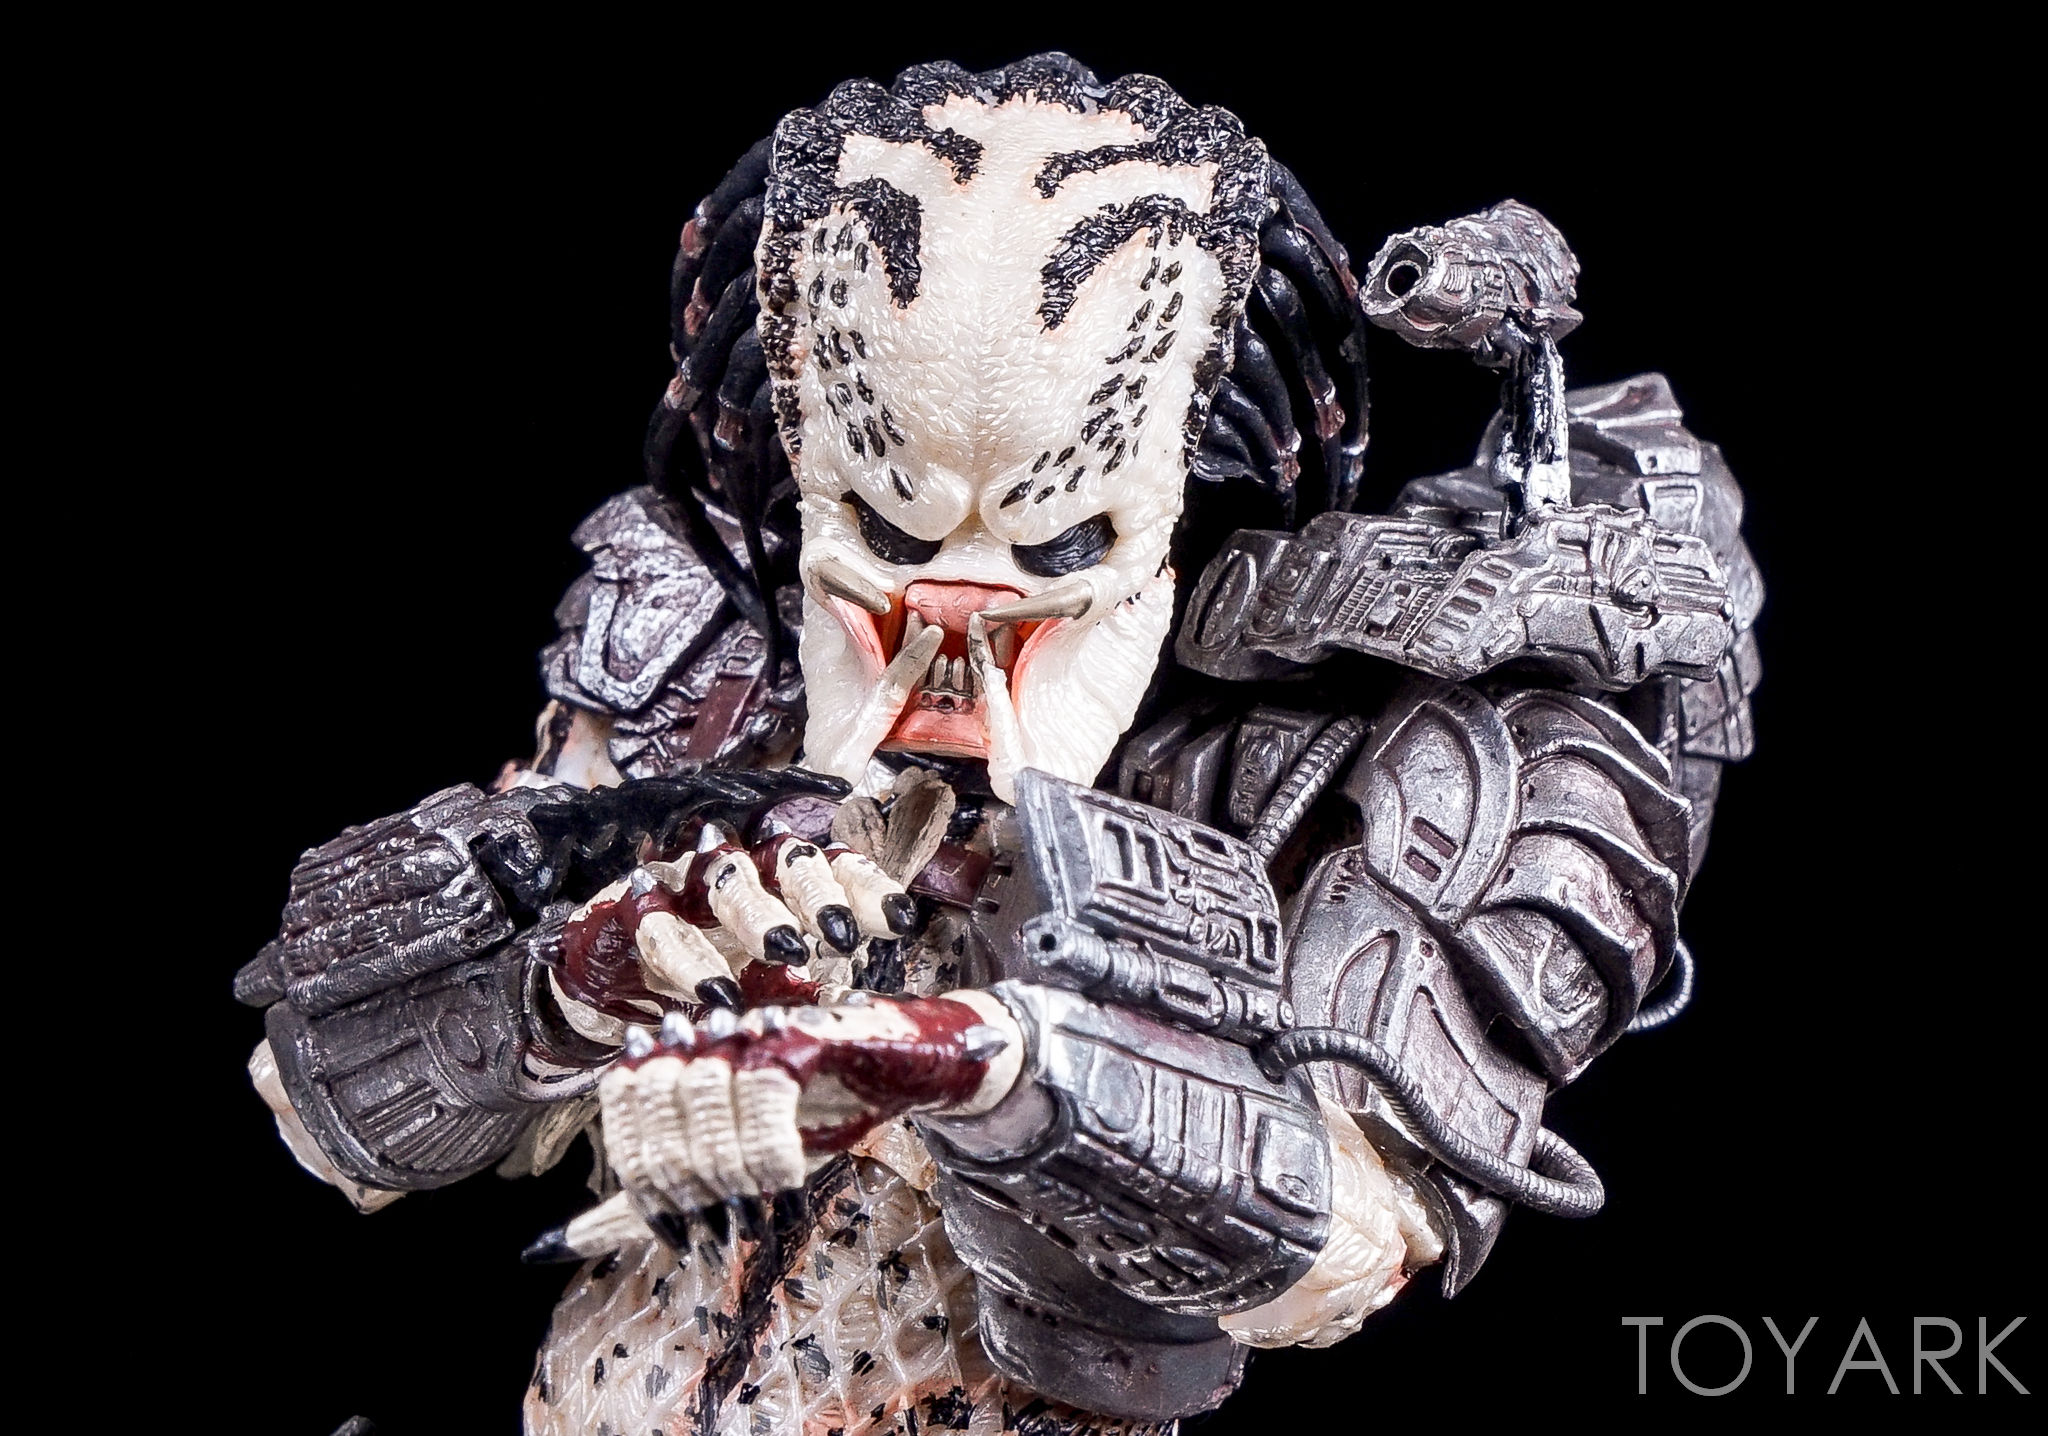 http://news.toyark.com/wp-content/uploads/sites/4/2016/10/Predator-Series-16-NECA-086.jpg